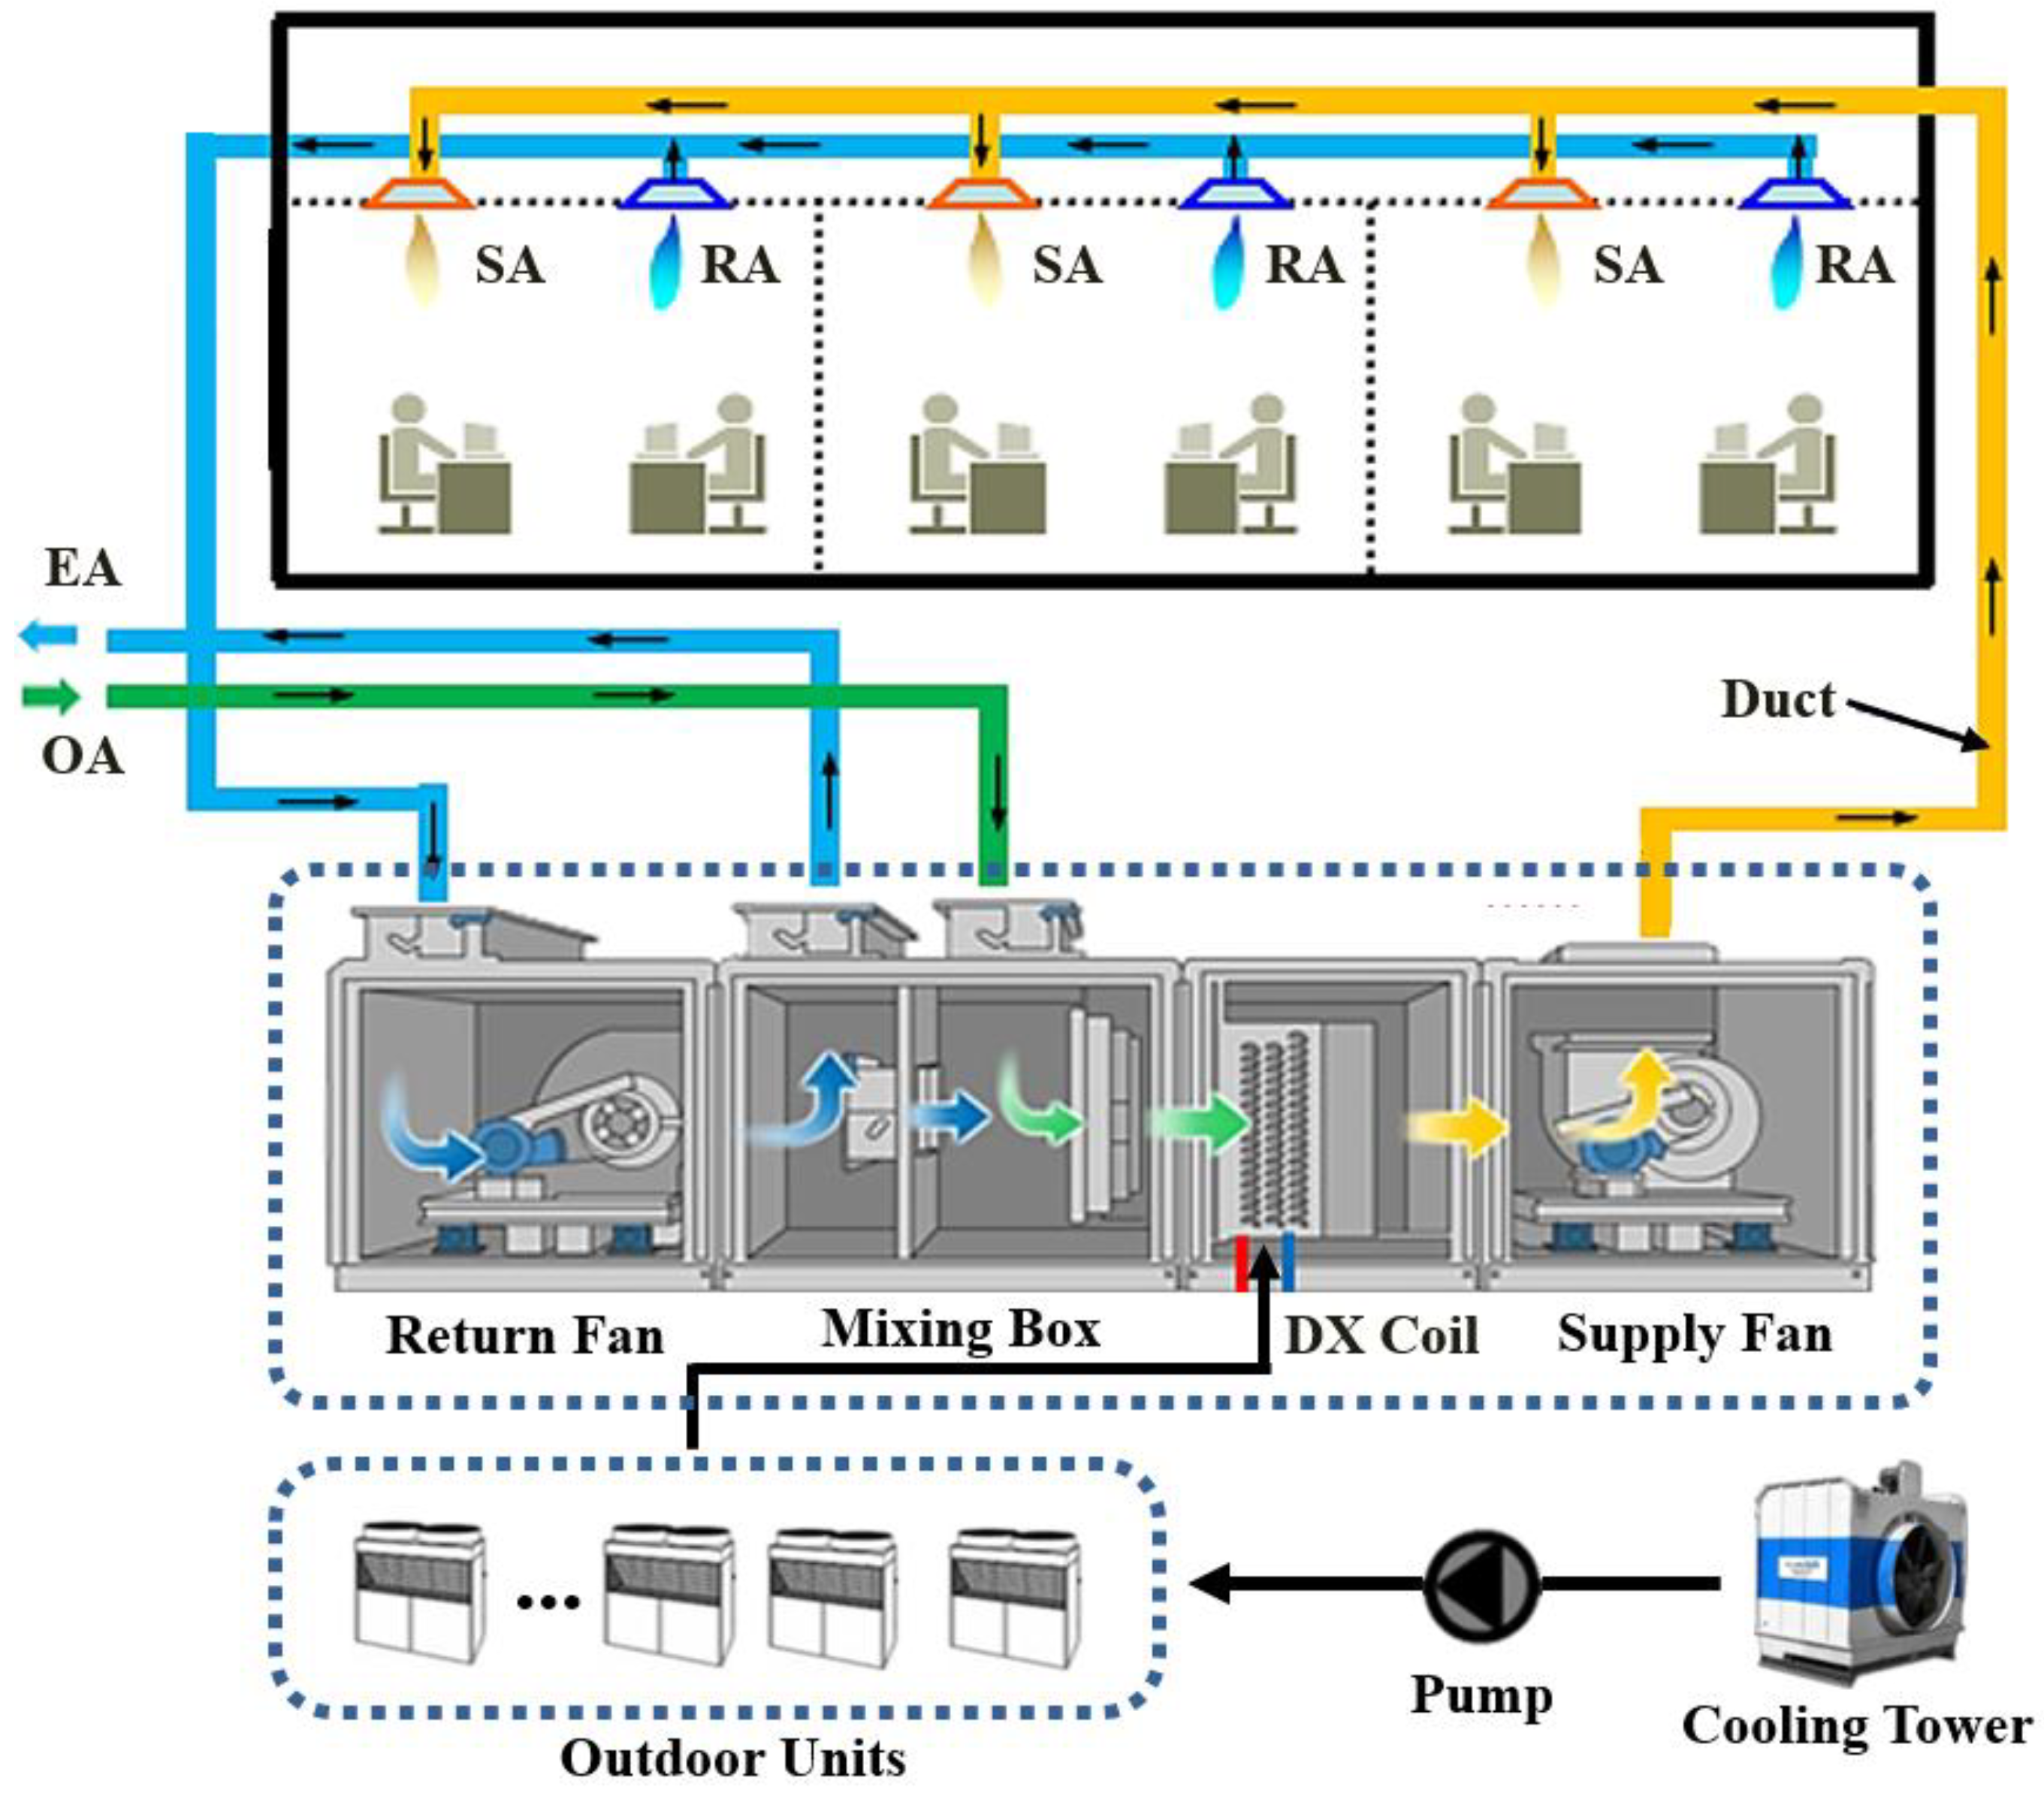 Daikin Introduces Vrv Life Systems For Residential Applications Dx Stulz Wiring Diagram